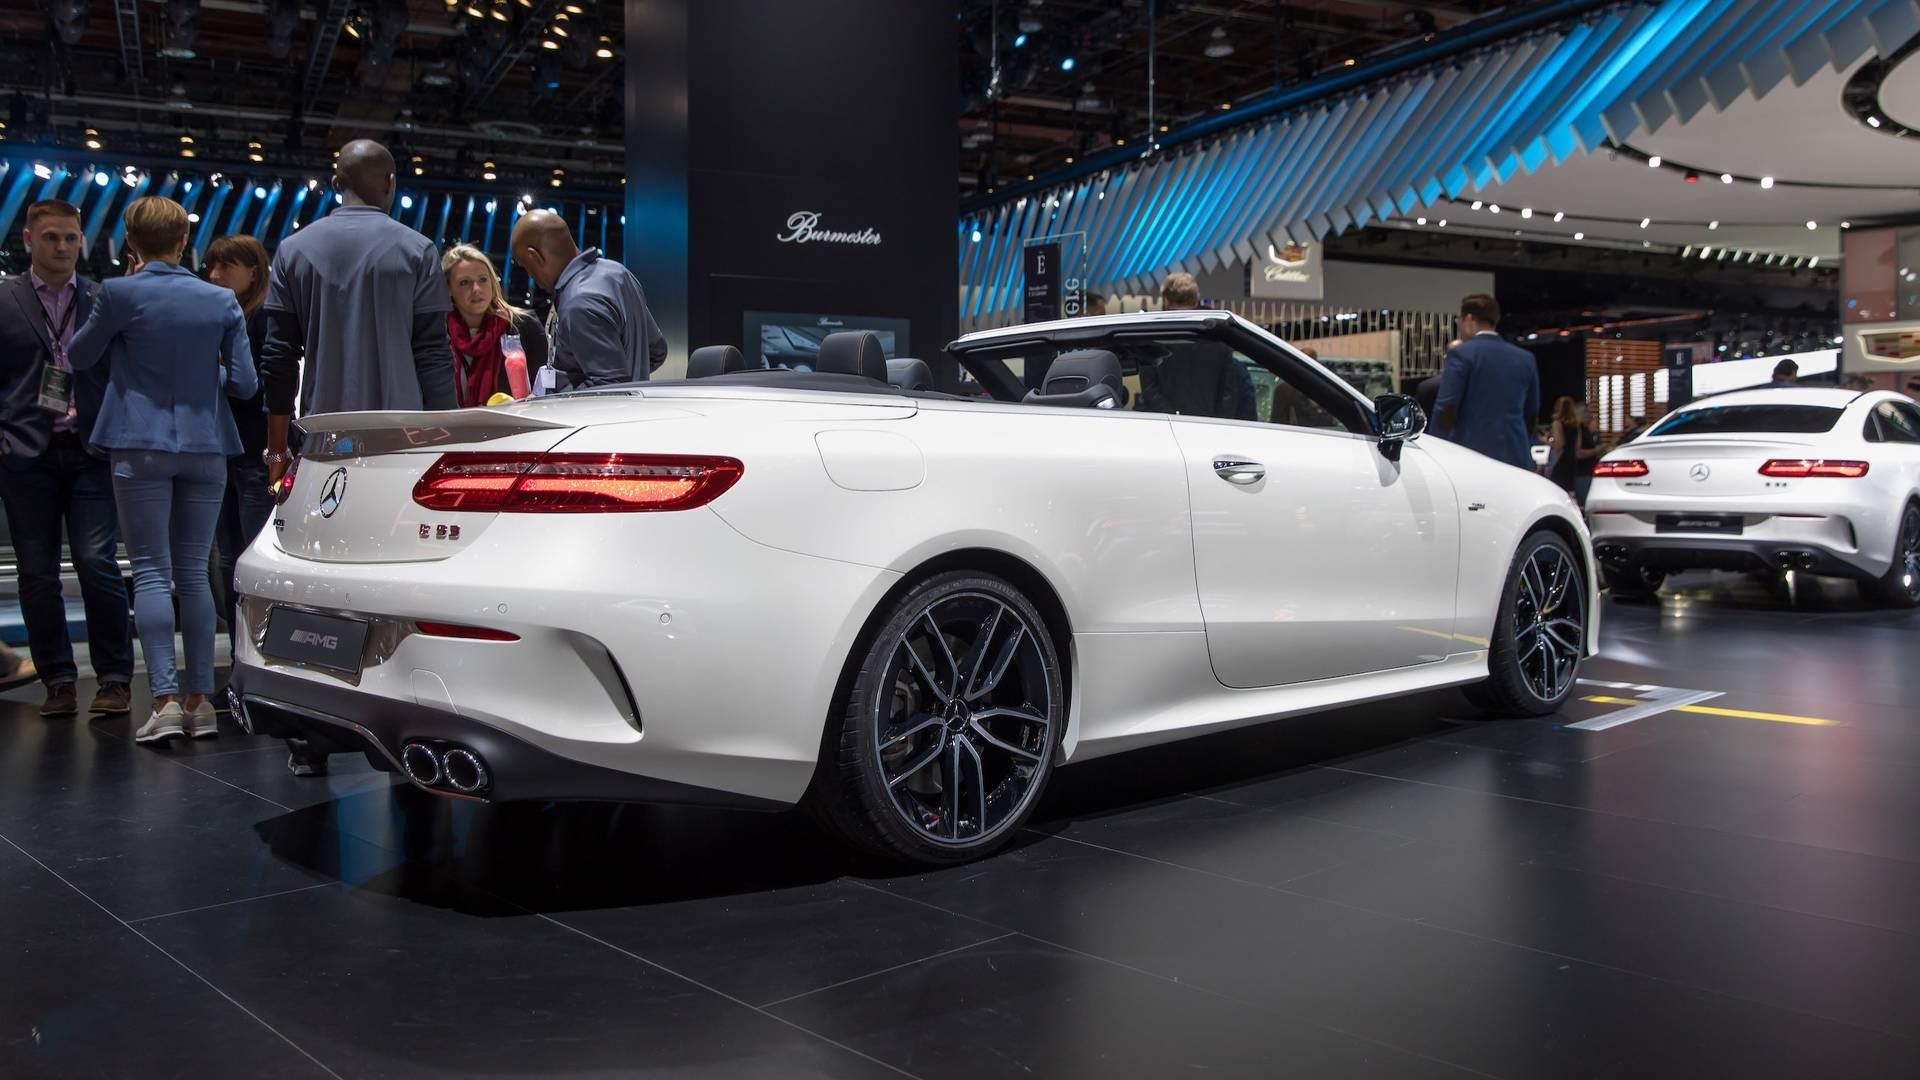 https://icdn-8.motor1.com/images/mgl/rb4RP/s1/2019-mercedes-amg-e53-cabriolet.jpg